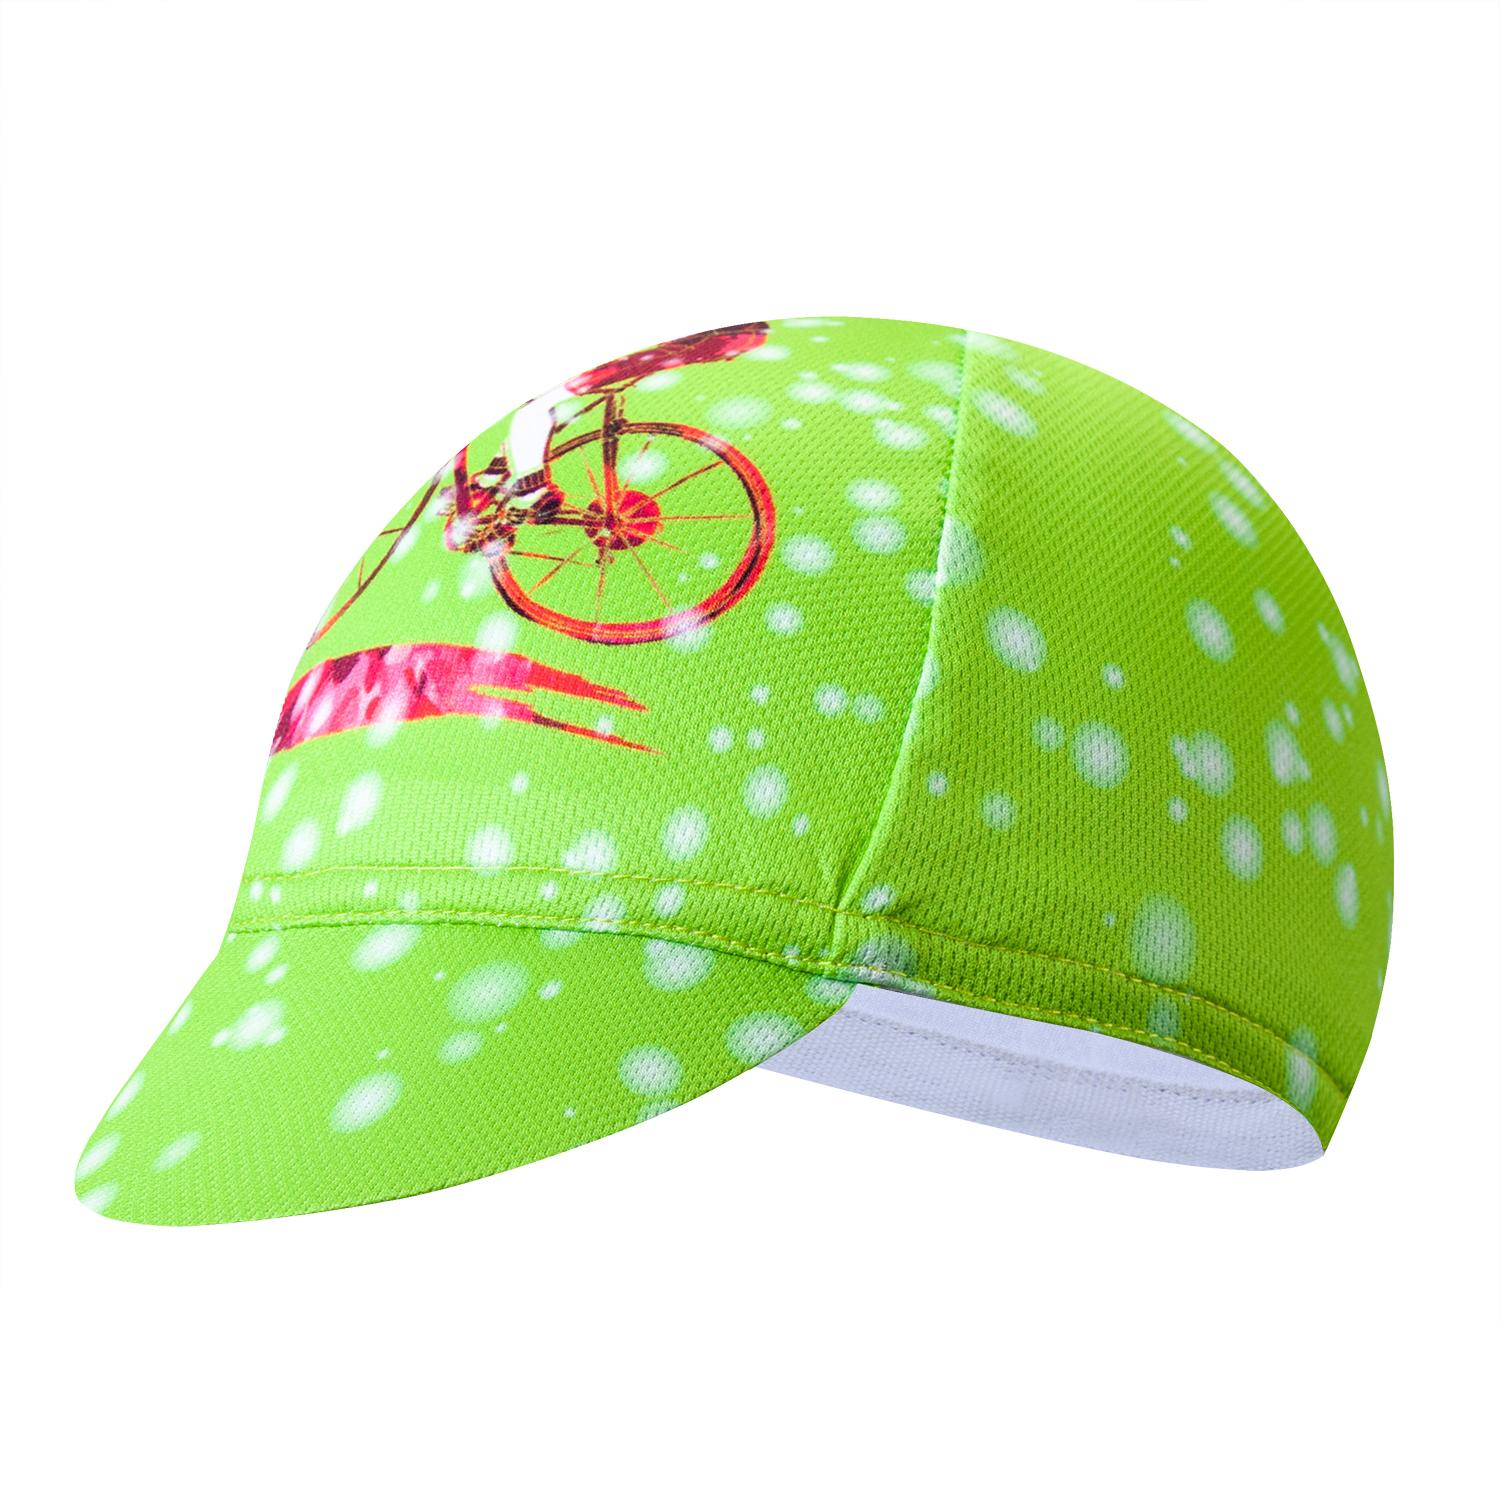 Cycling Cap Bike Bicycle Breathable Sweat Proof Polyester Hat Riding